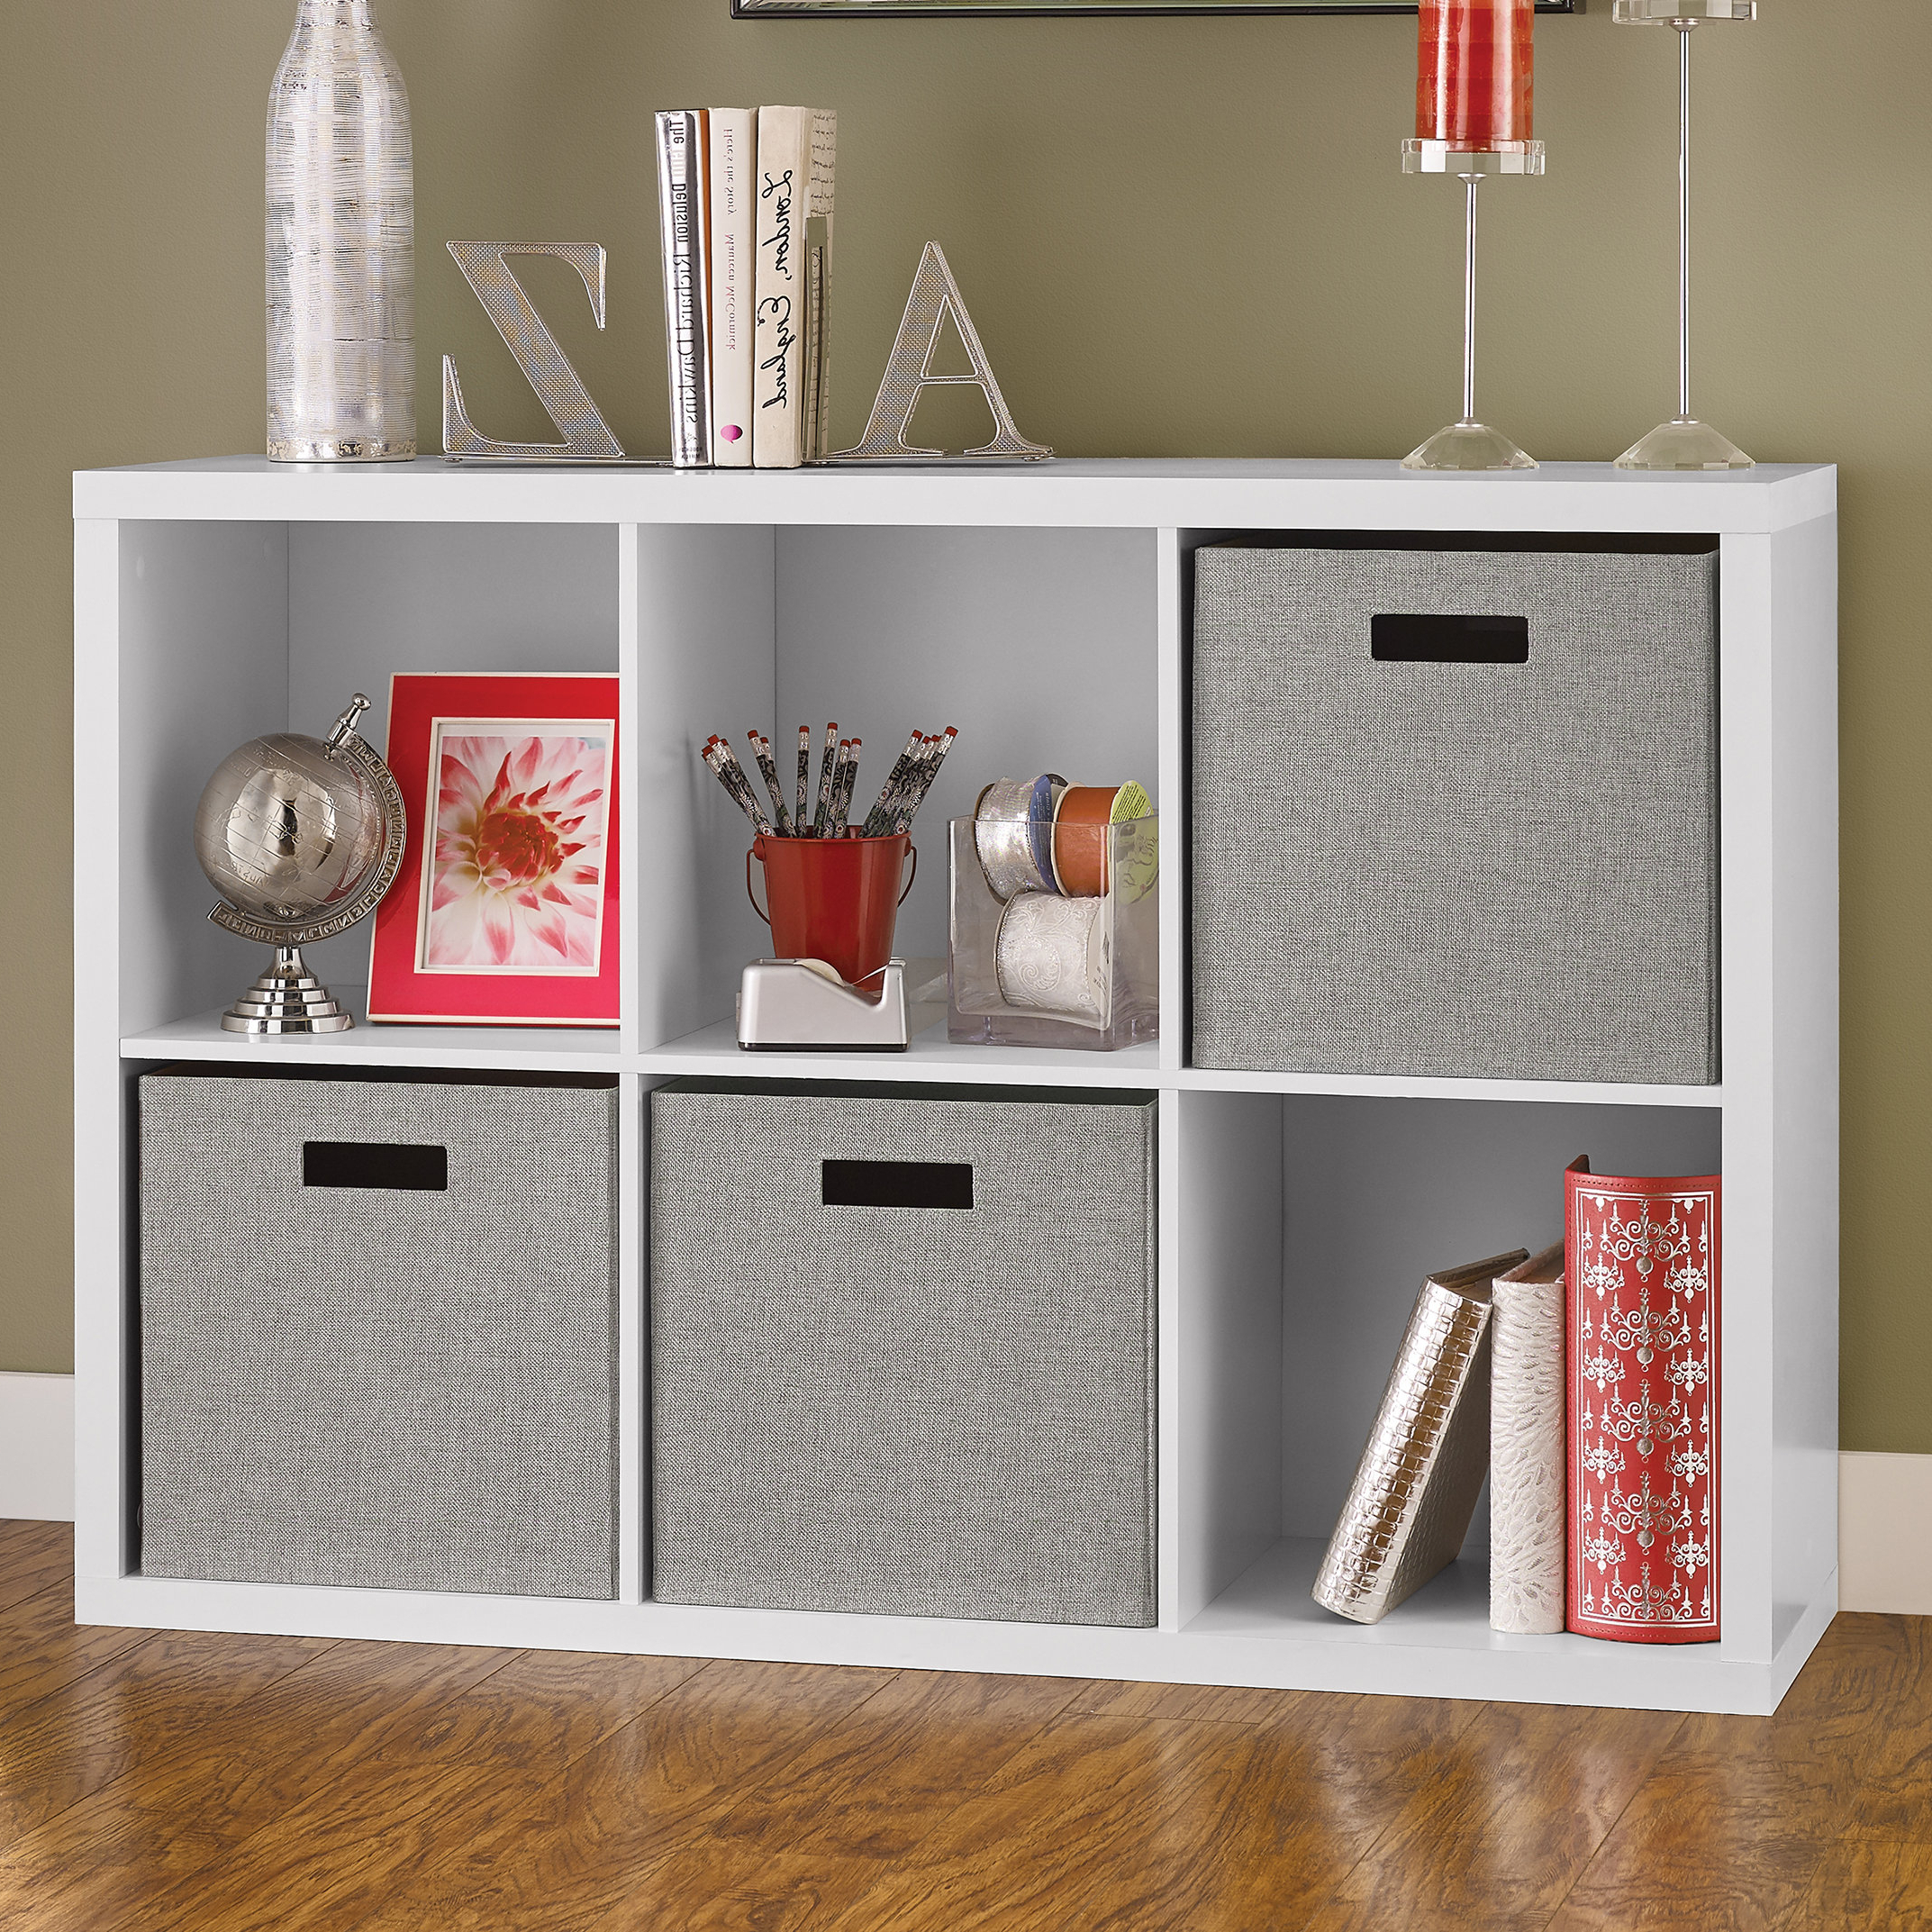 Cubicals Cube Bookcases Regarding Popular Decorative Storage Cube Bookcase (View 5 of 20)